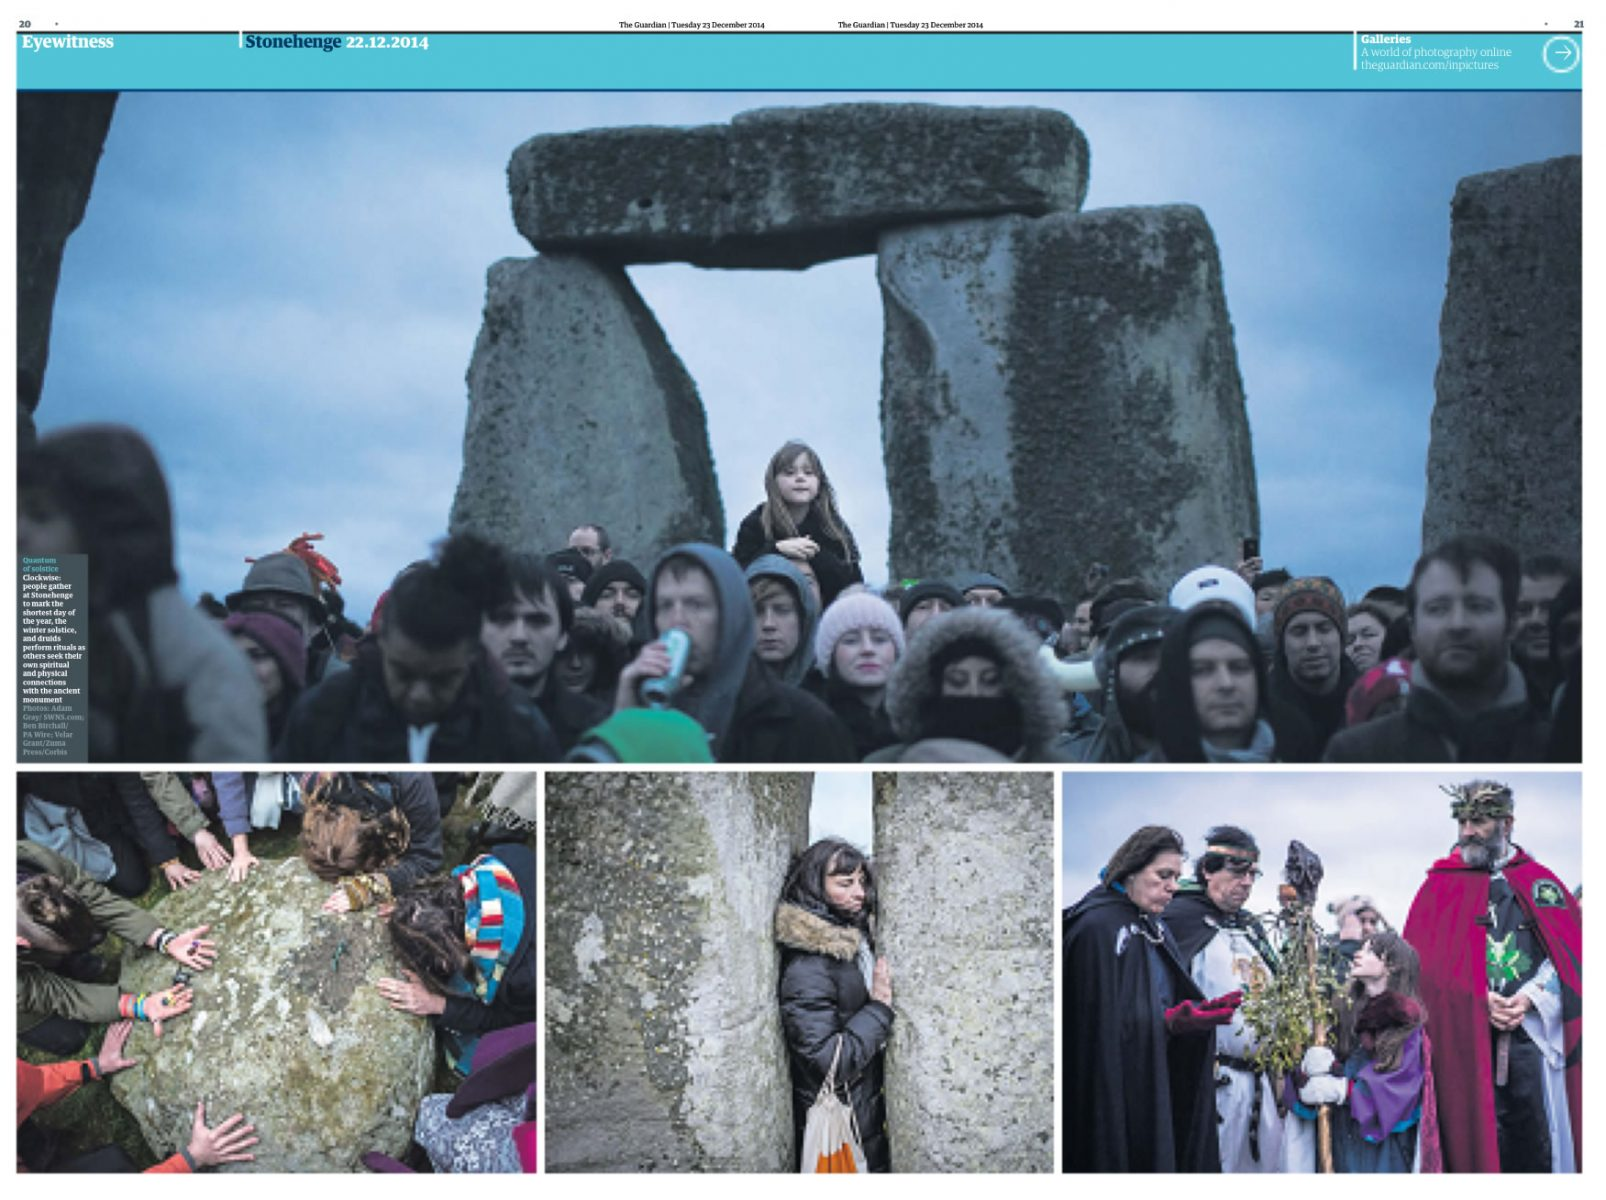 Winter Solstice - Eyewitness - Page 20&21